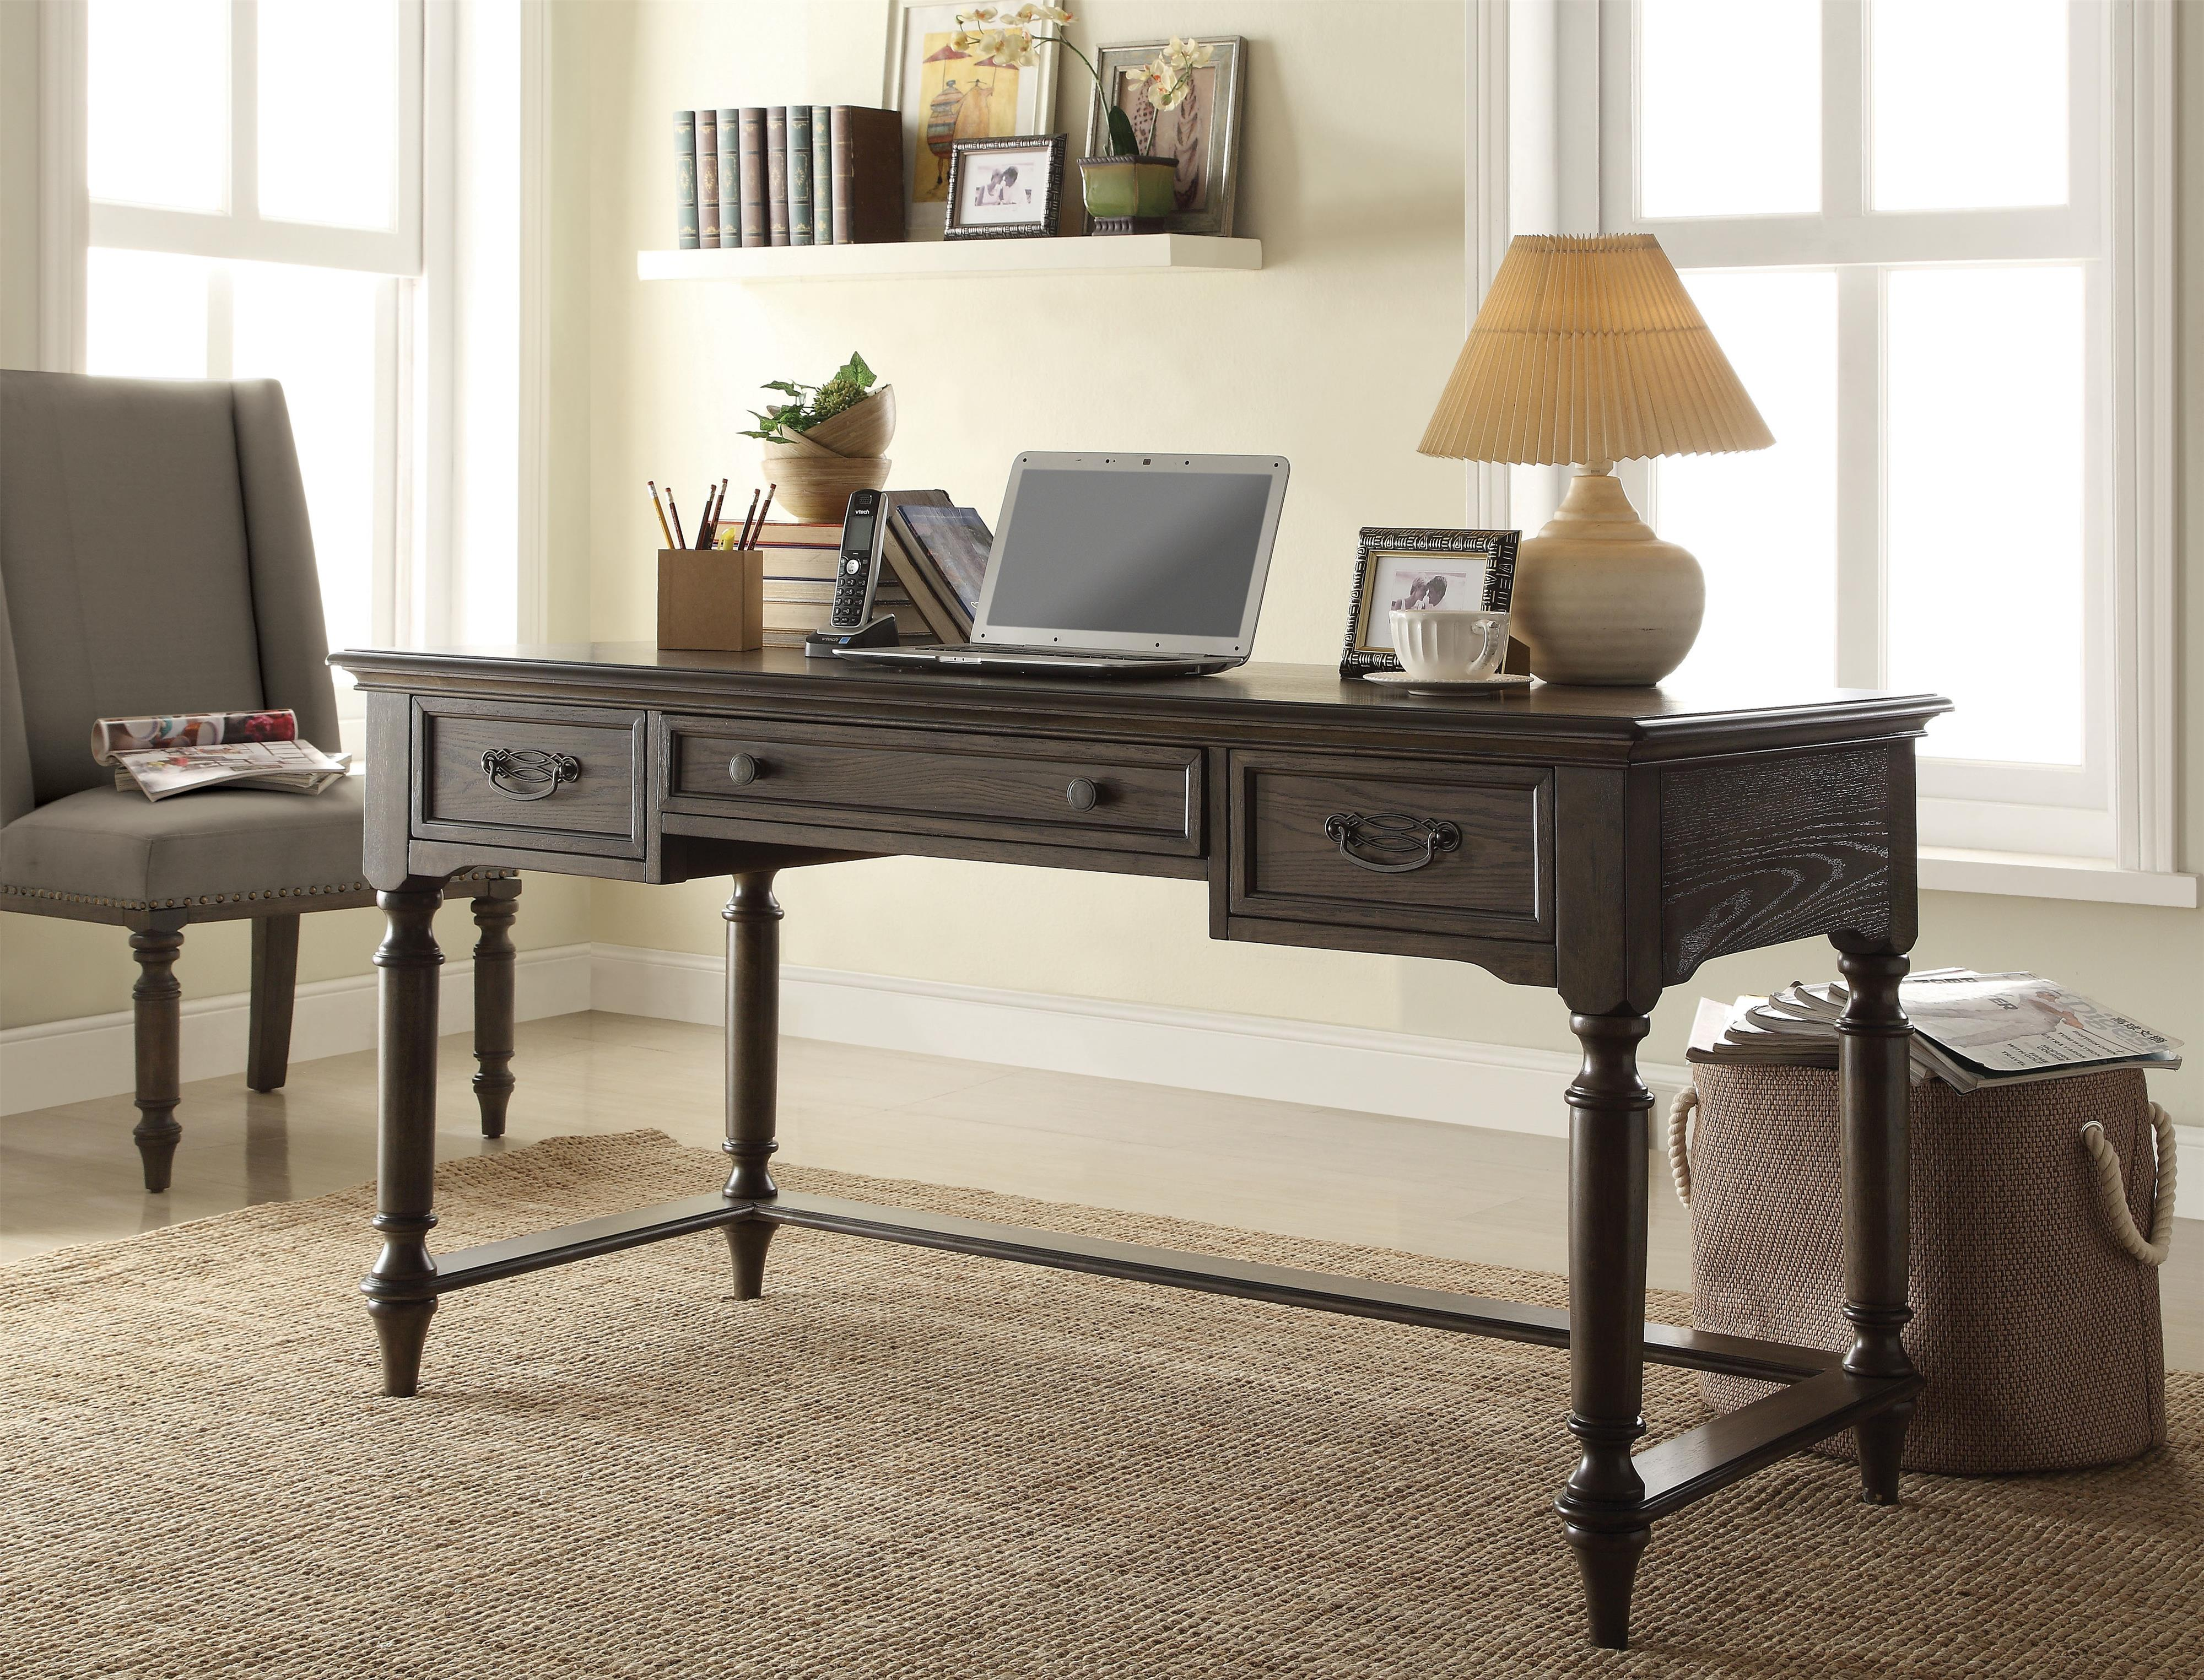 Traditional Writing Desk W/ Outlet. Low Price Guarantee Badge By Riverside  Furniture